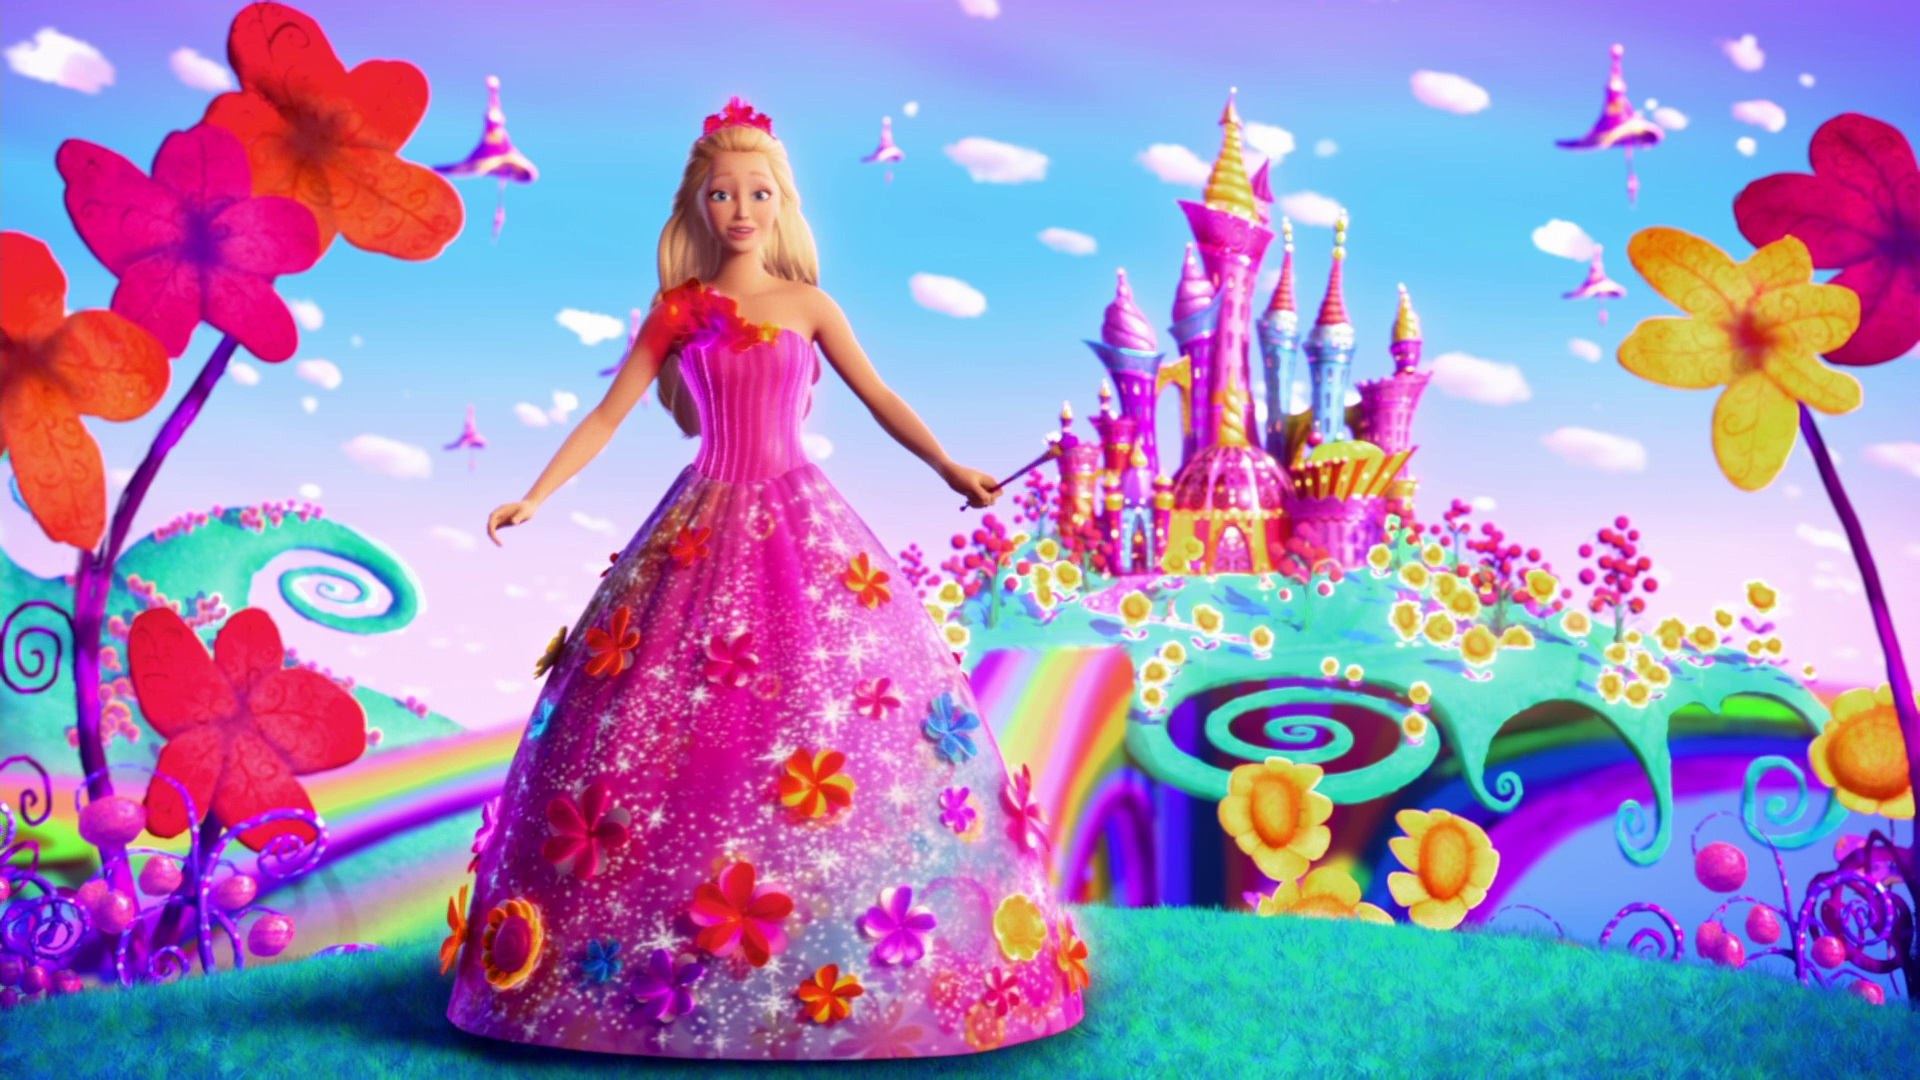 Newly Released Barbie Movies images Barbie Secret Door HD wallpaper and background photos  sc 1 st  Fanpop & Newly Released Barbie Movies images Barbie Secret Door HD wallpaper ...